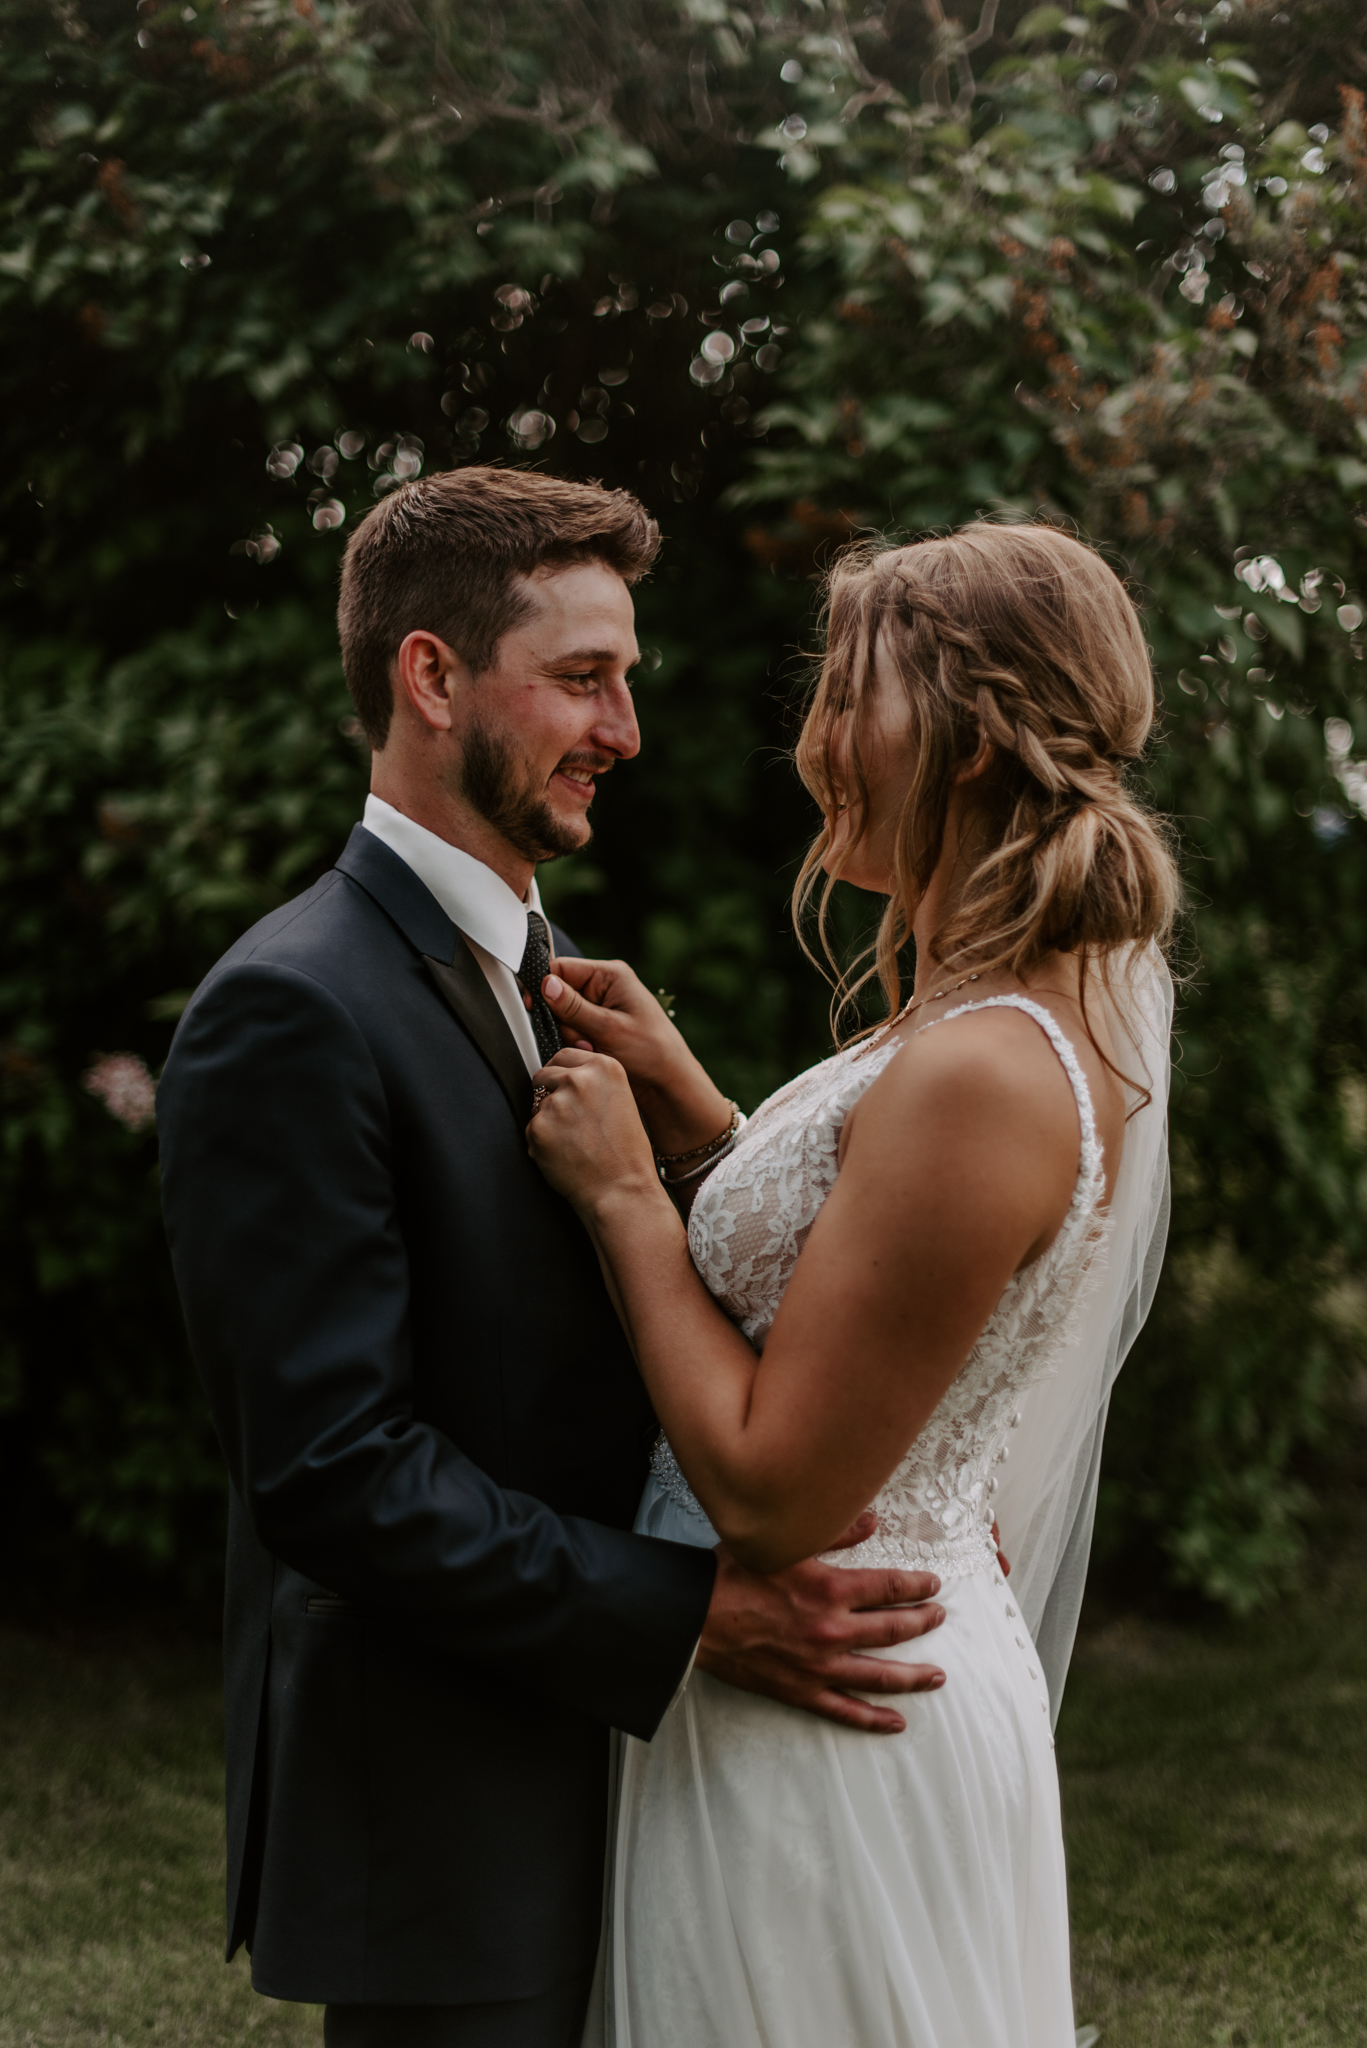 Romantic Edmonton Alberta outdoor wedding